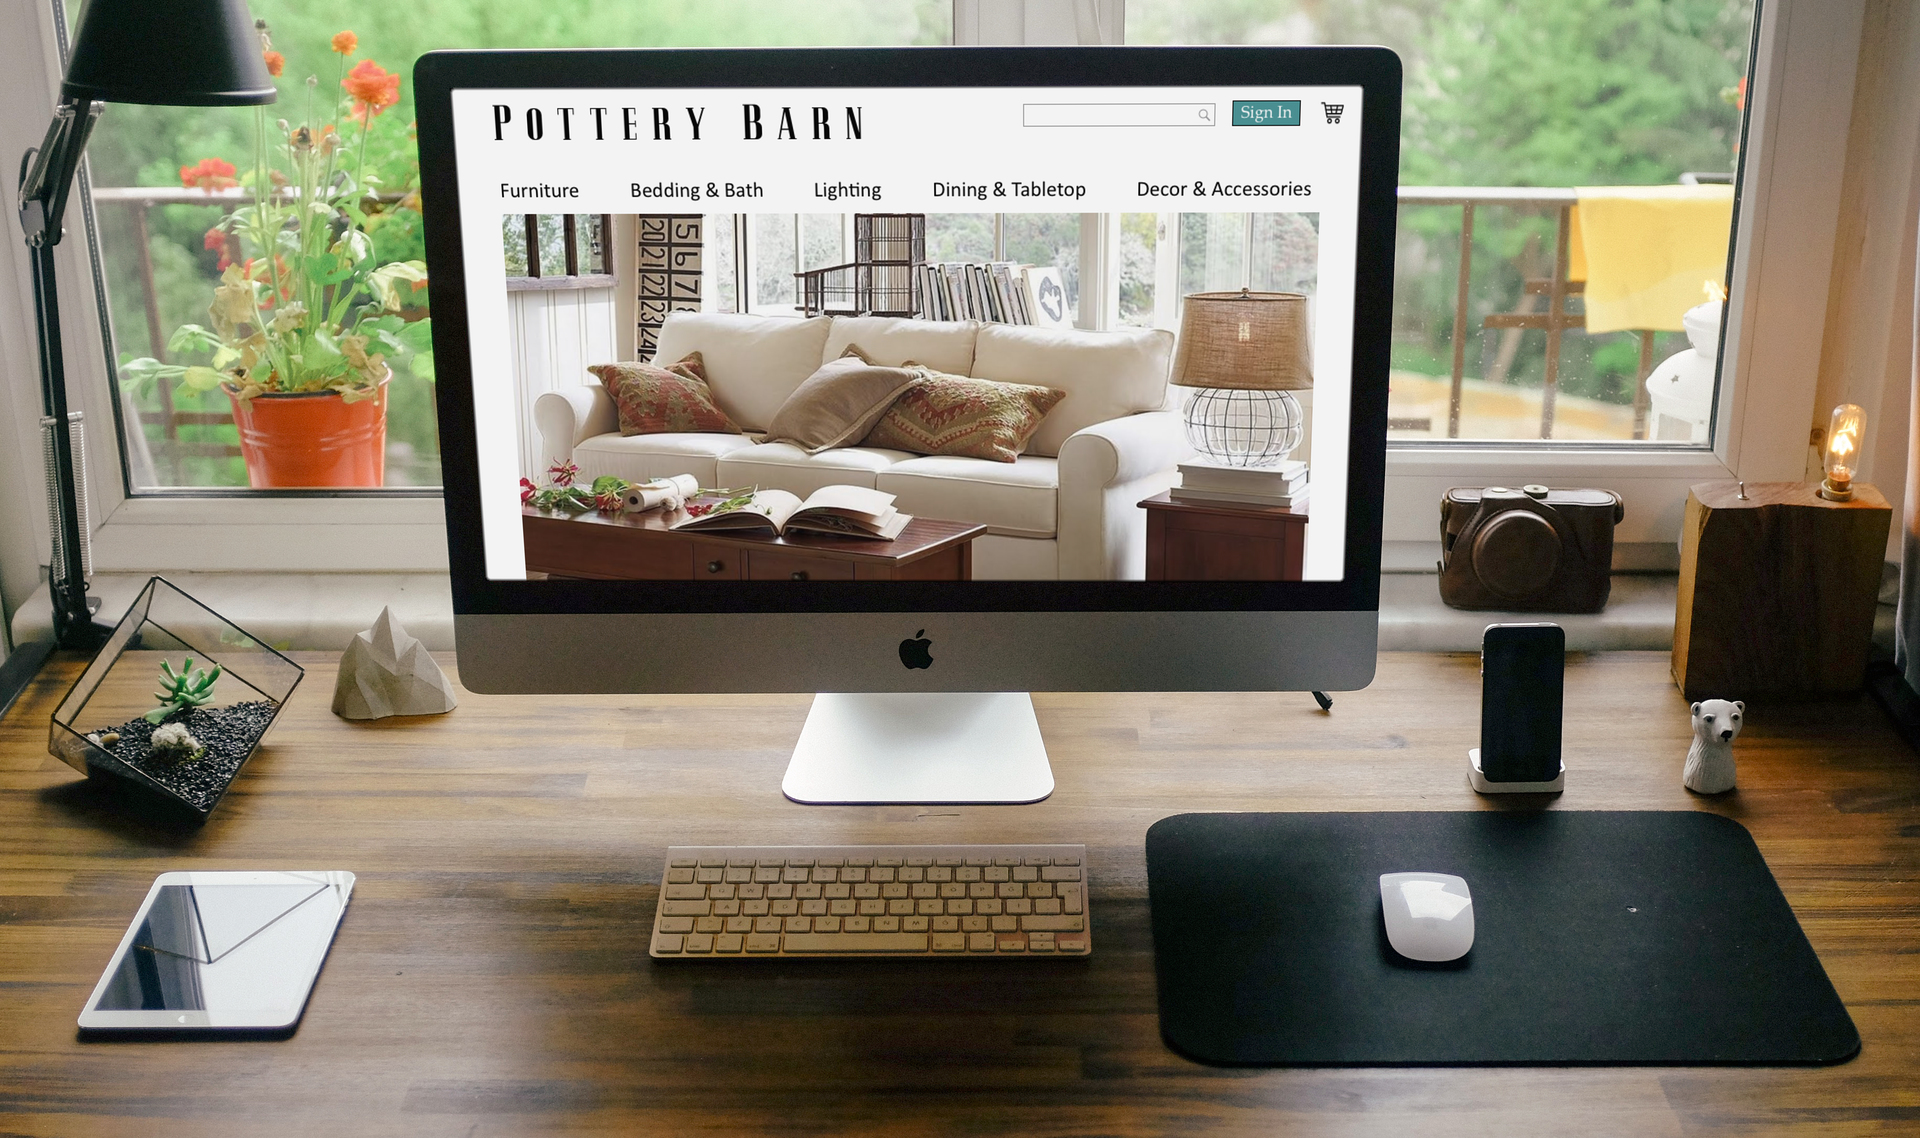 Pottery Barn Website Redsign